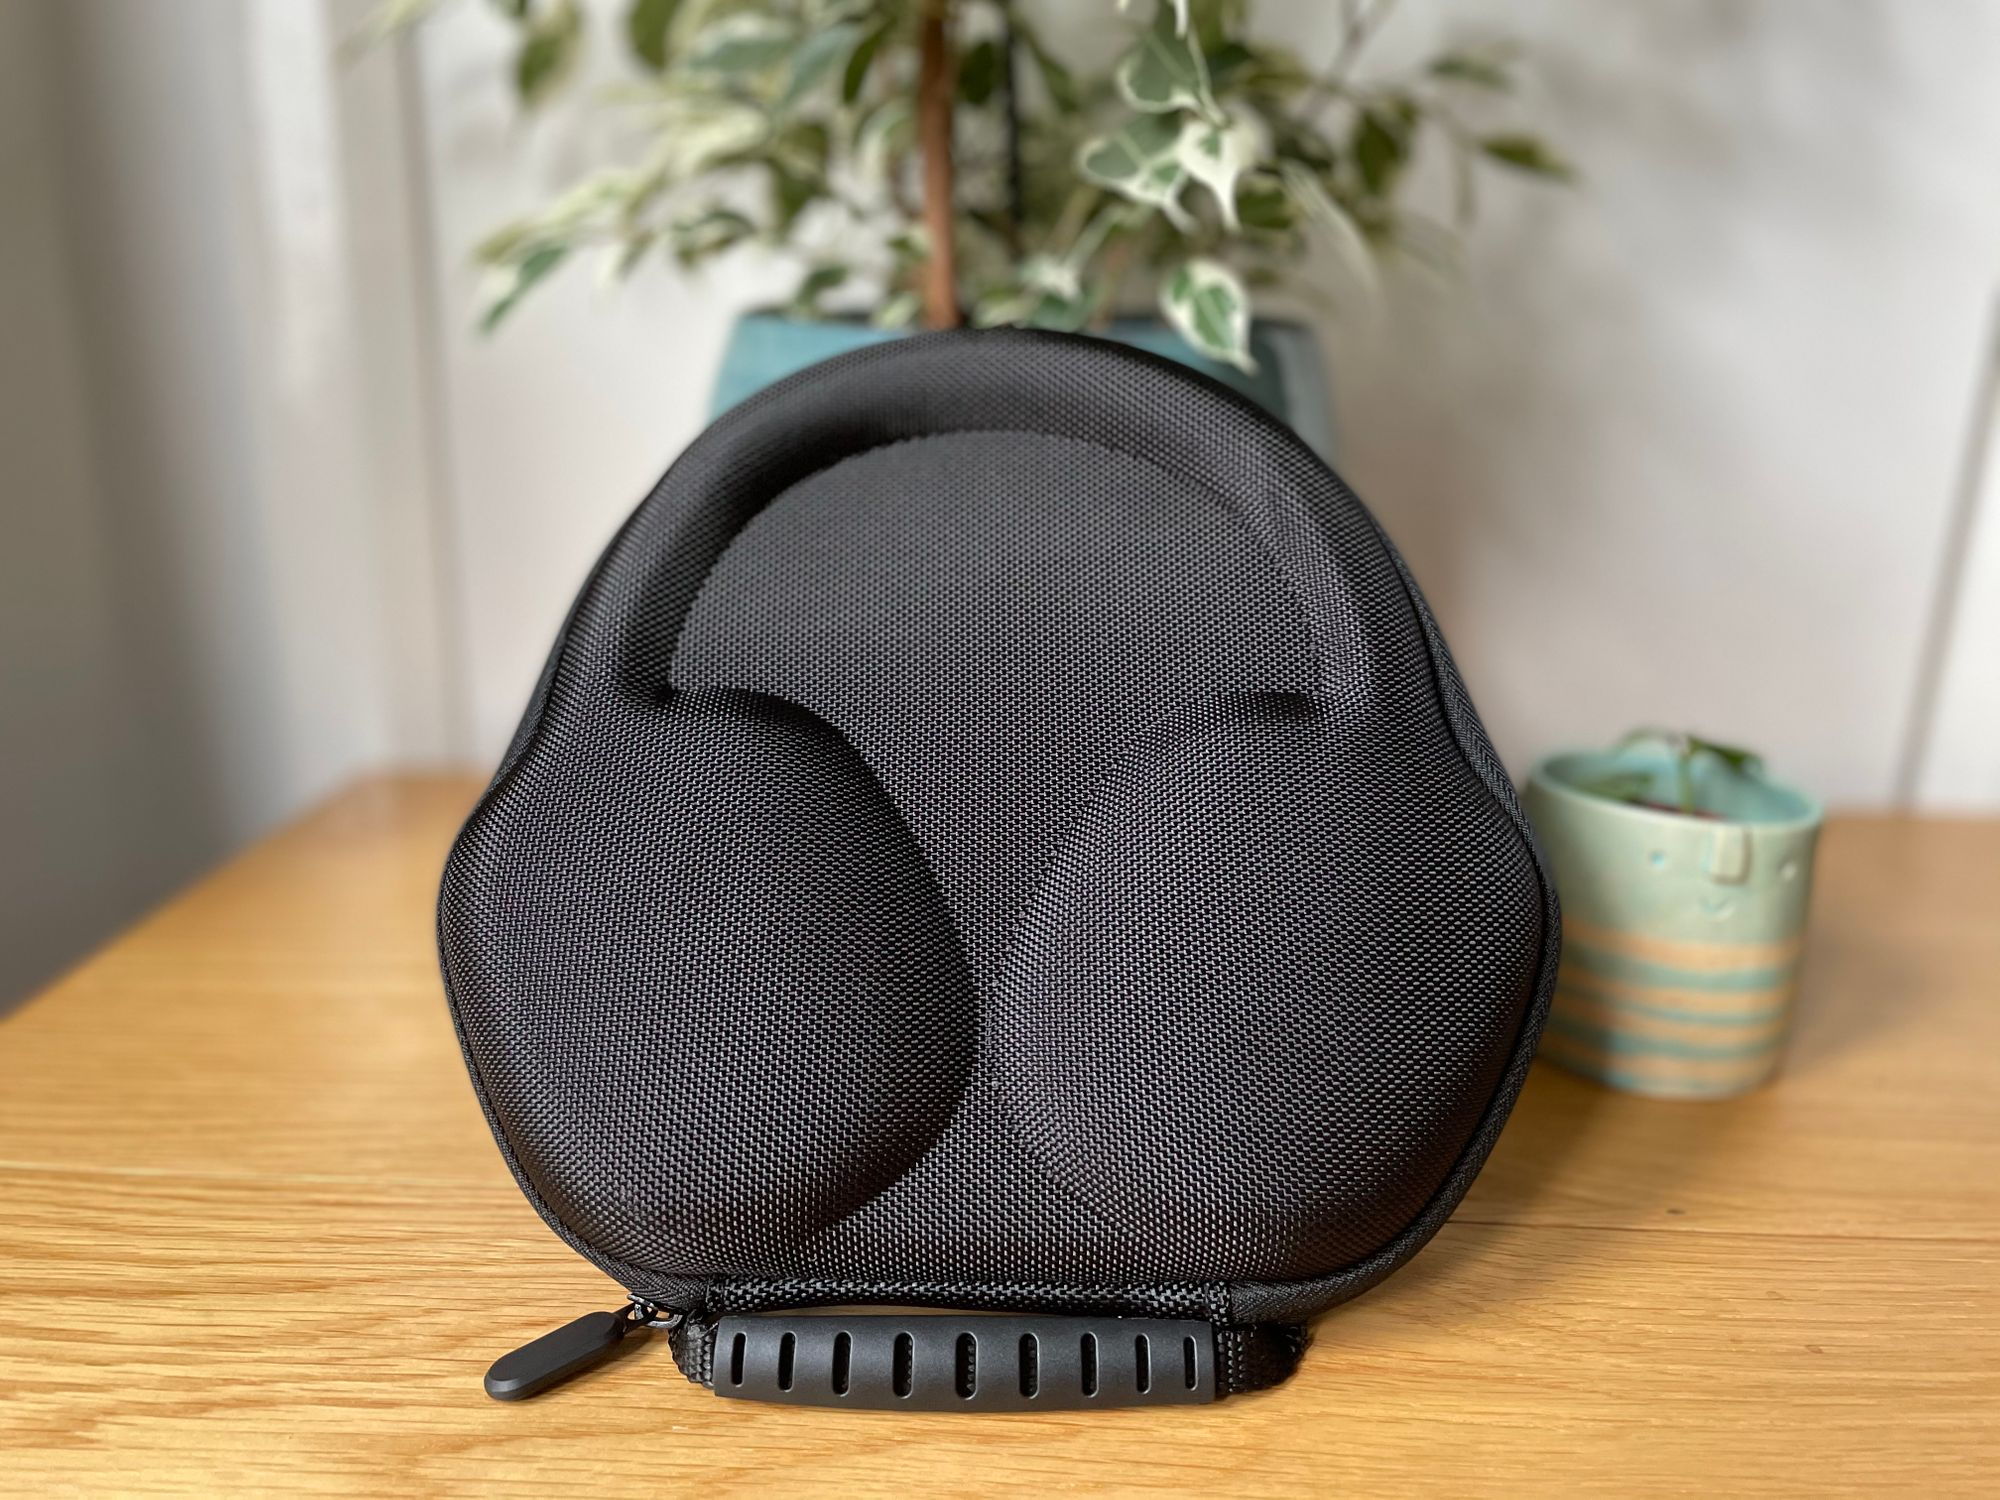 this AirPods Max case shows how easily Apple could have avoided the 'bra'